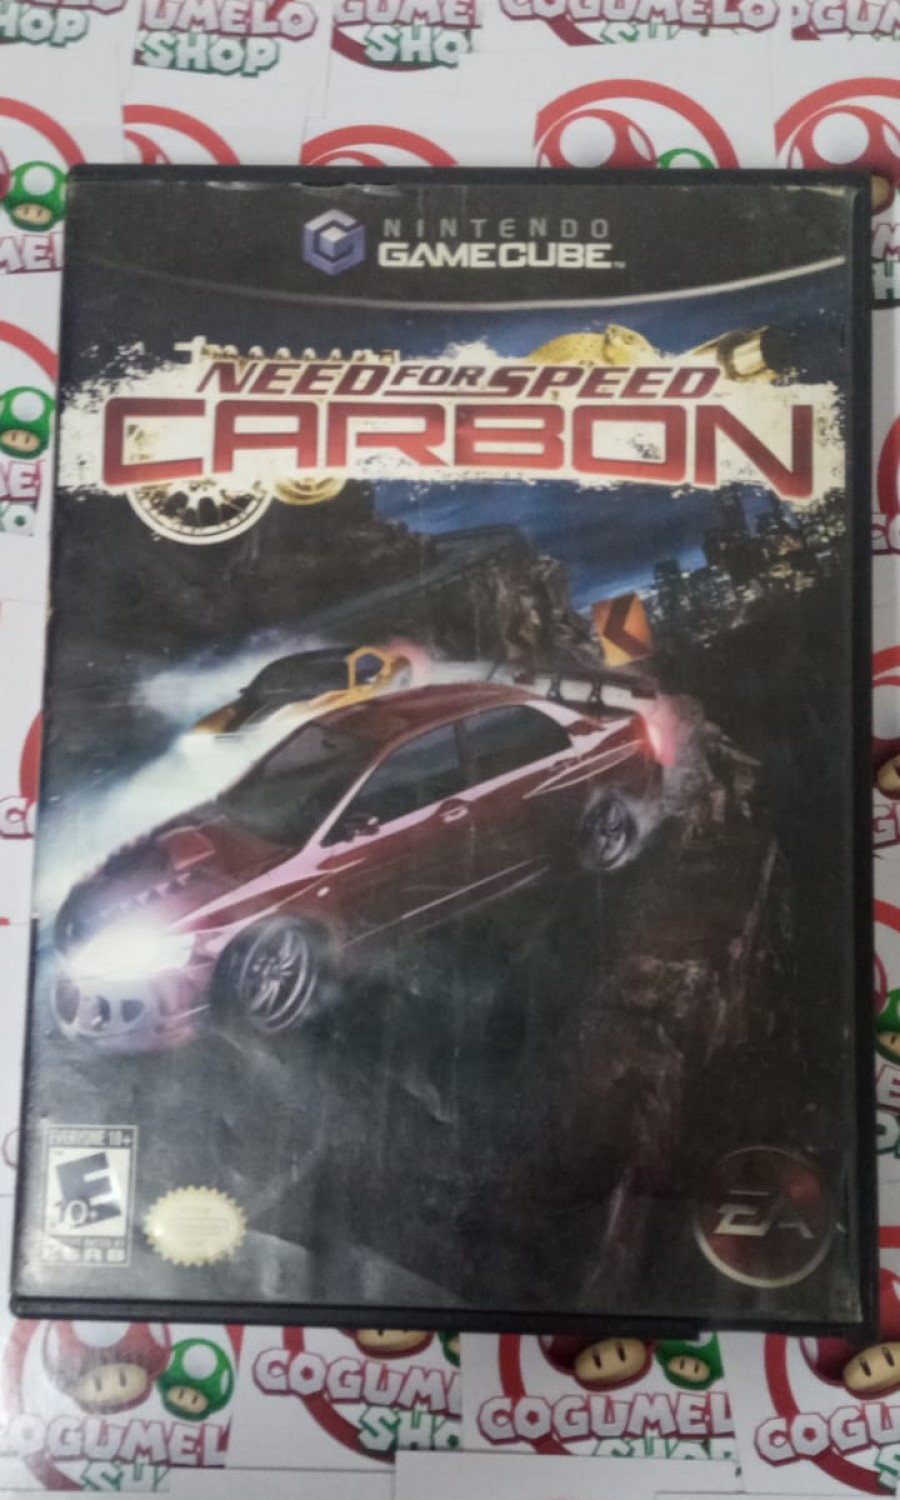 Need for Speed: Carbon - USADO - Nintendo GameCube